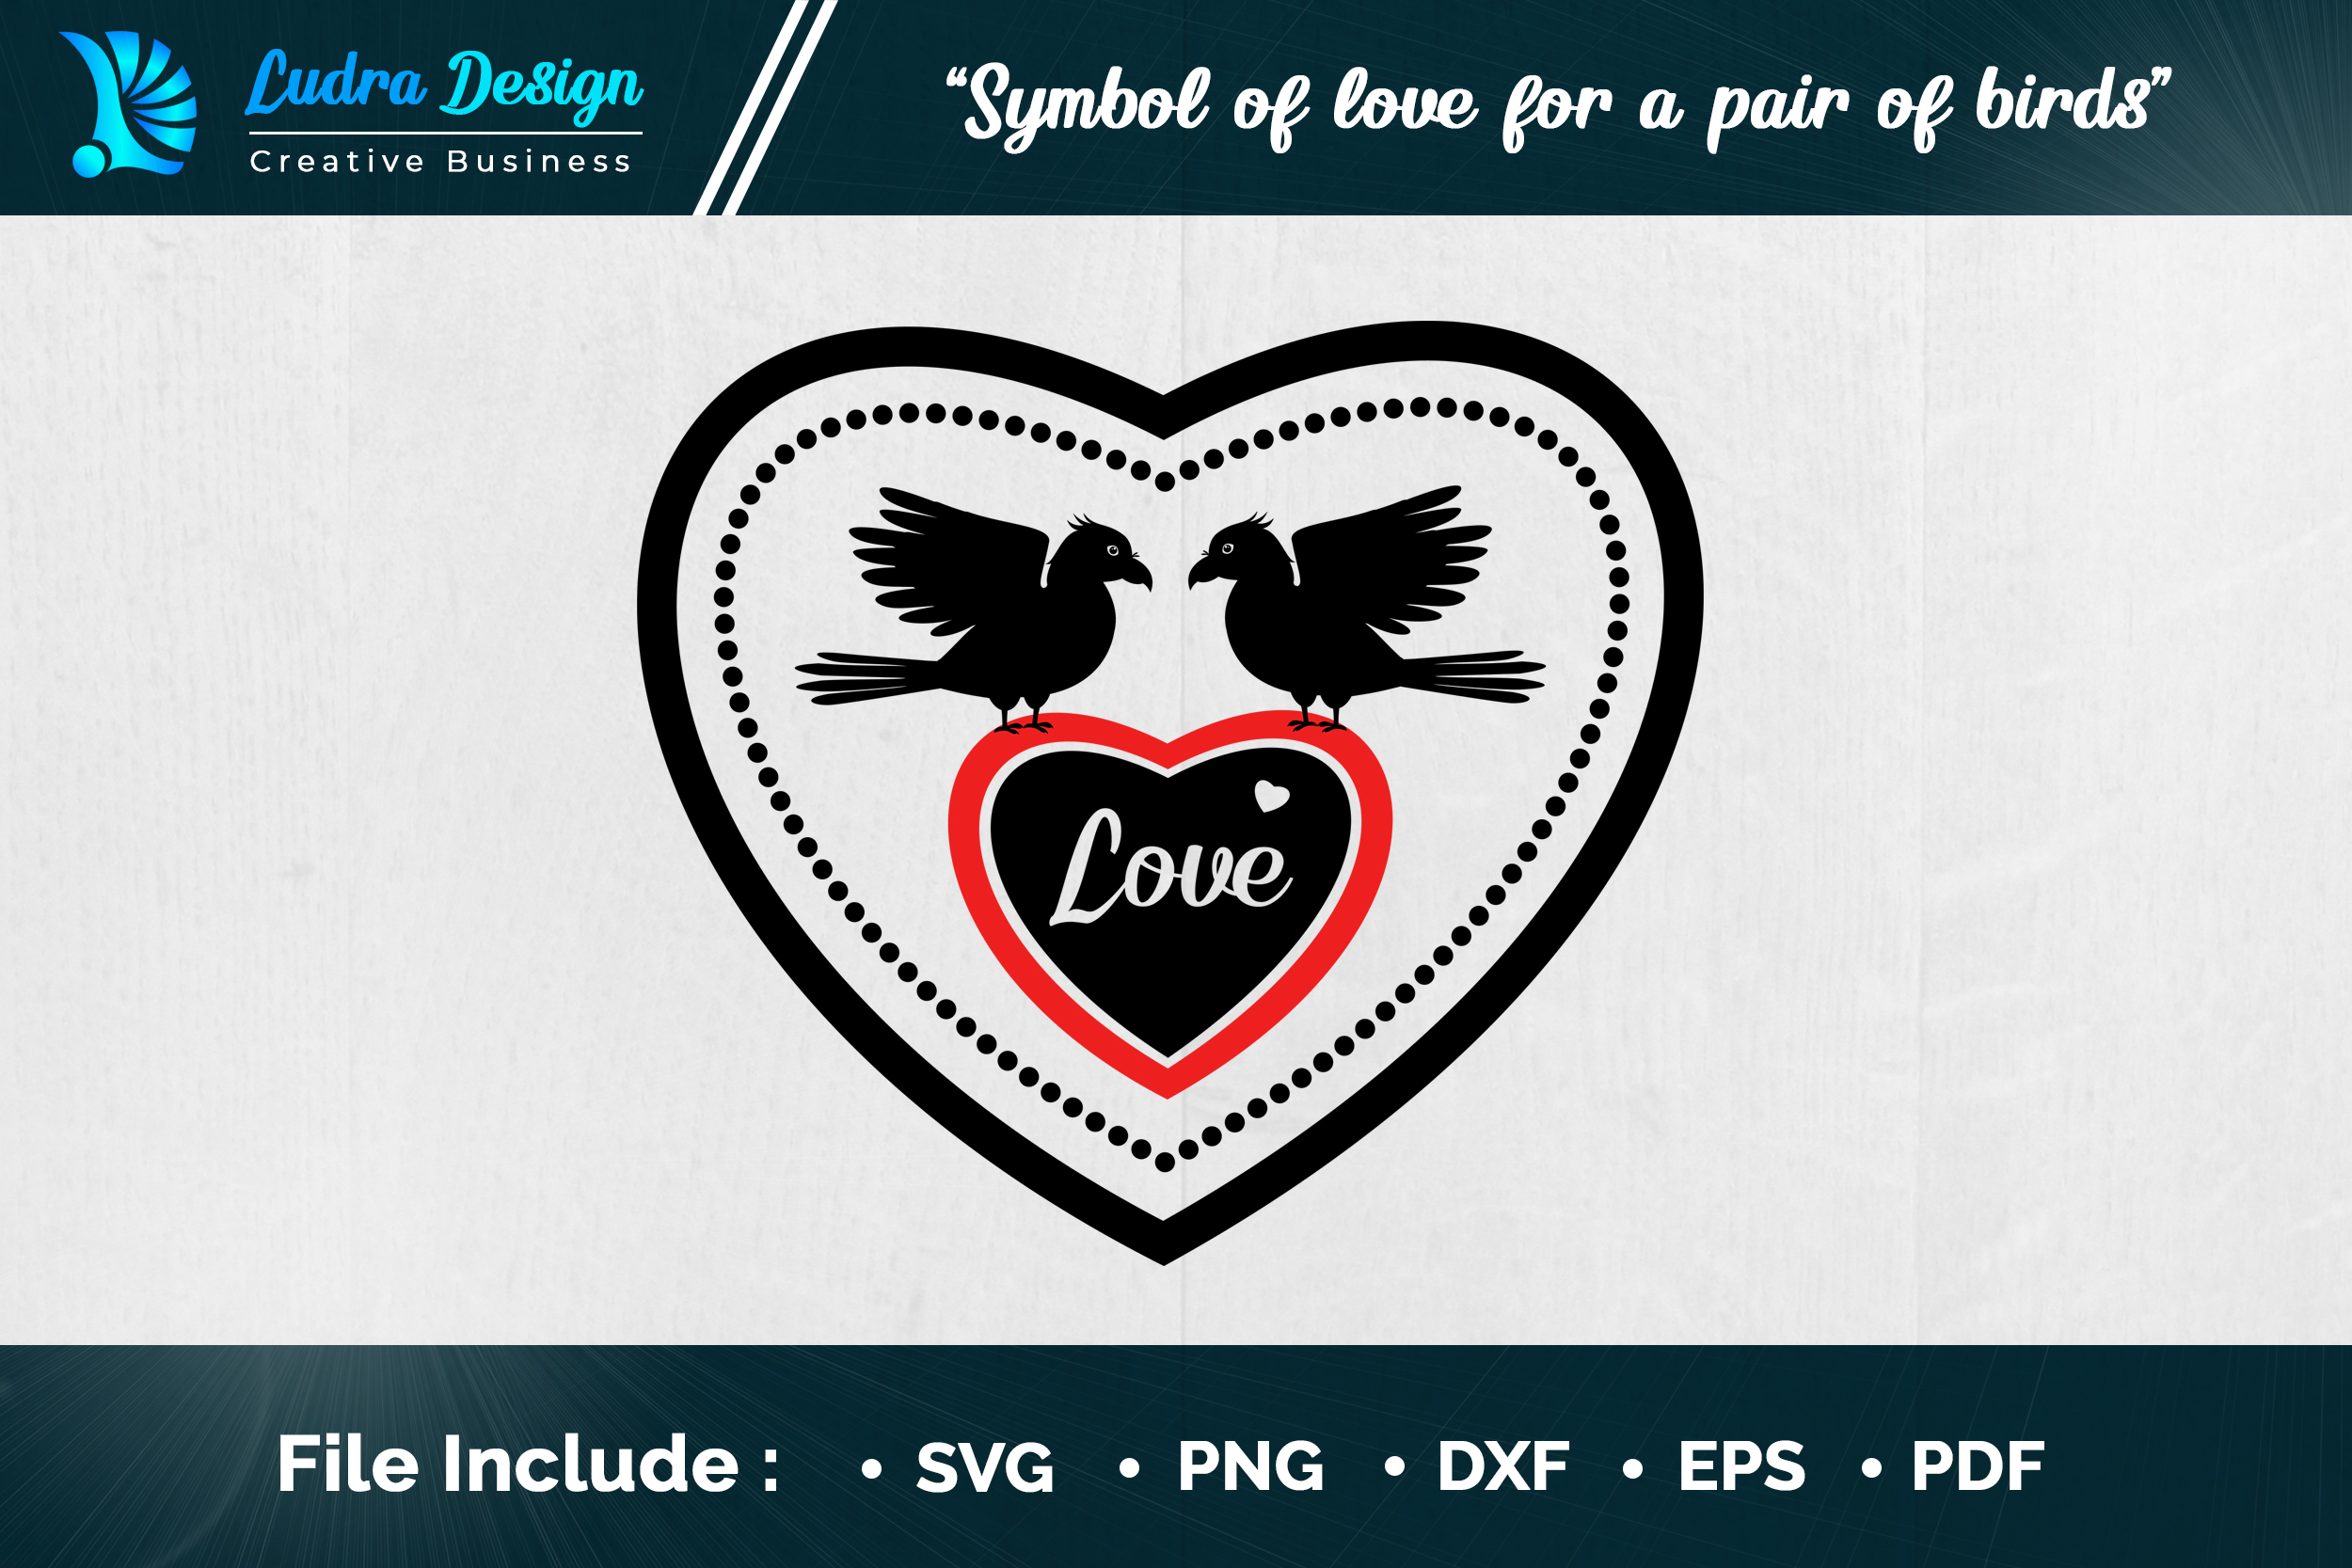 Download Free Symbol Of Love For A Pair Of Birds Graphic By Ludradesignmaker for Cricut Explore, Silhouette and other cutting machines.